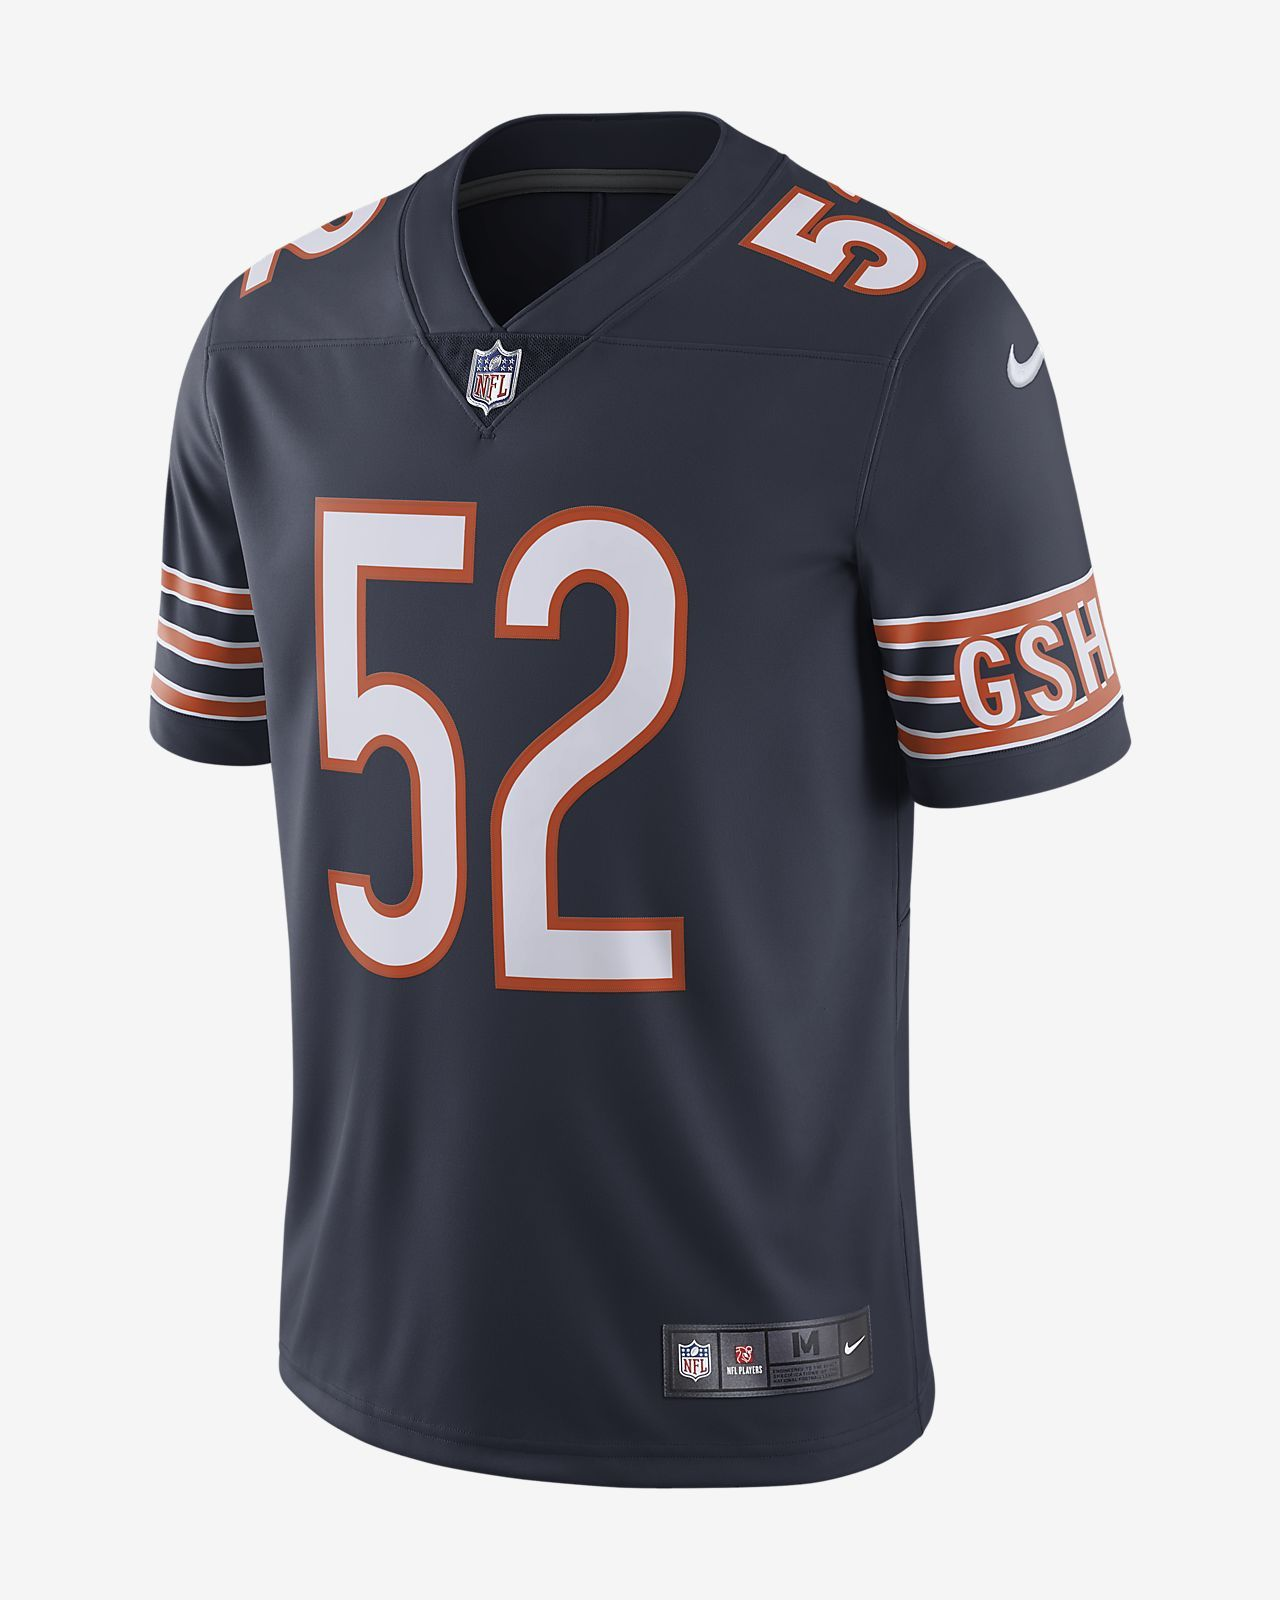 Nfl Chicago Bears Limited Khalil Mack Men S Football Jersey Nike Com Is The Perfect High Quality Nfl Superbowl Chicago Bears Nfl Chicago Bears Football Jerseys